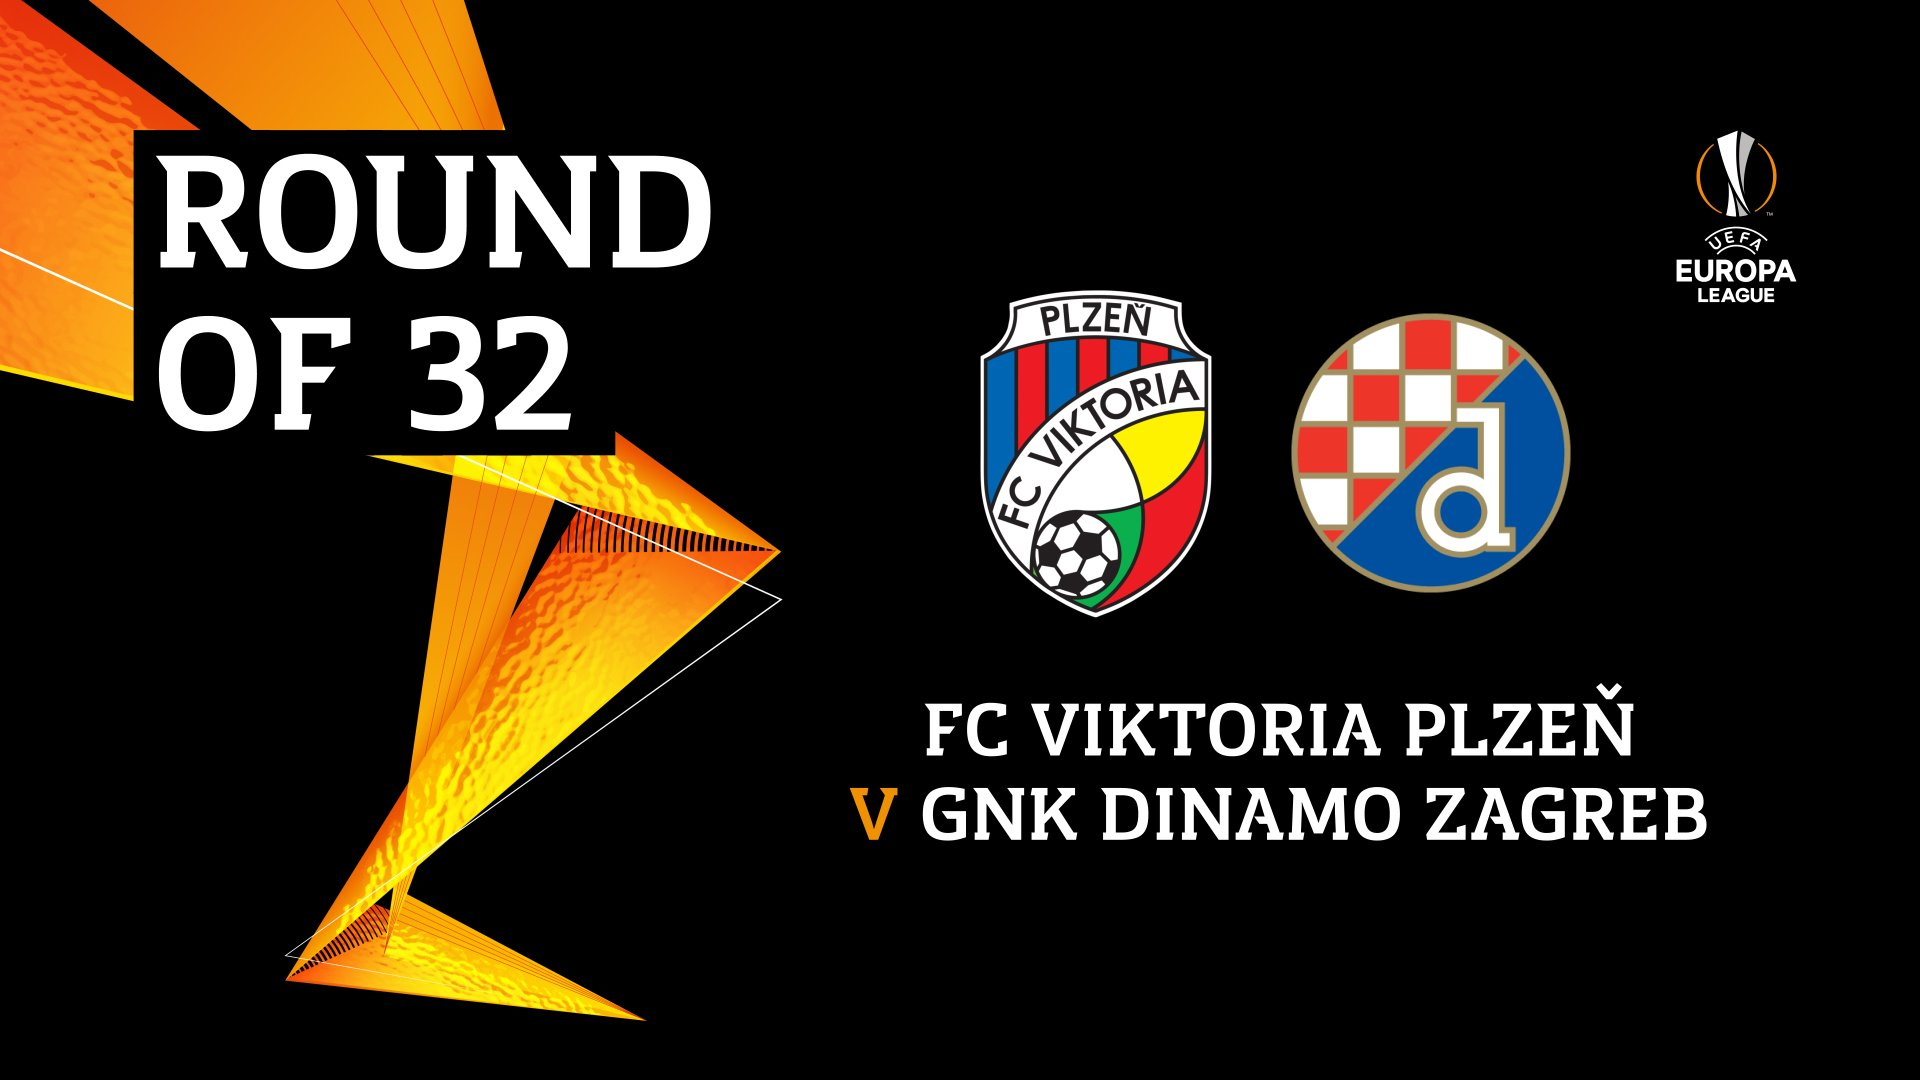 Dinamo Zagreb Is Our Opponent For Round Of 32 Of The Uefa Europa League Fc Viktoria Plzen